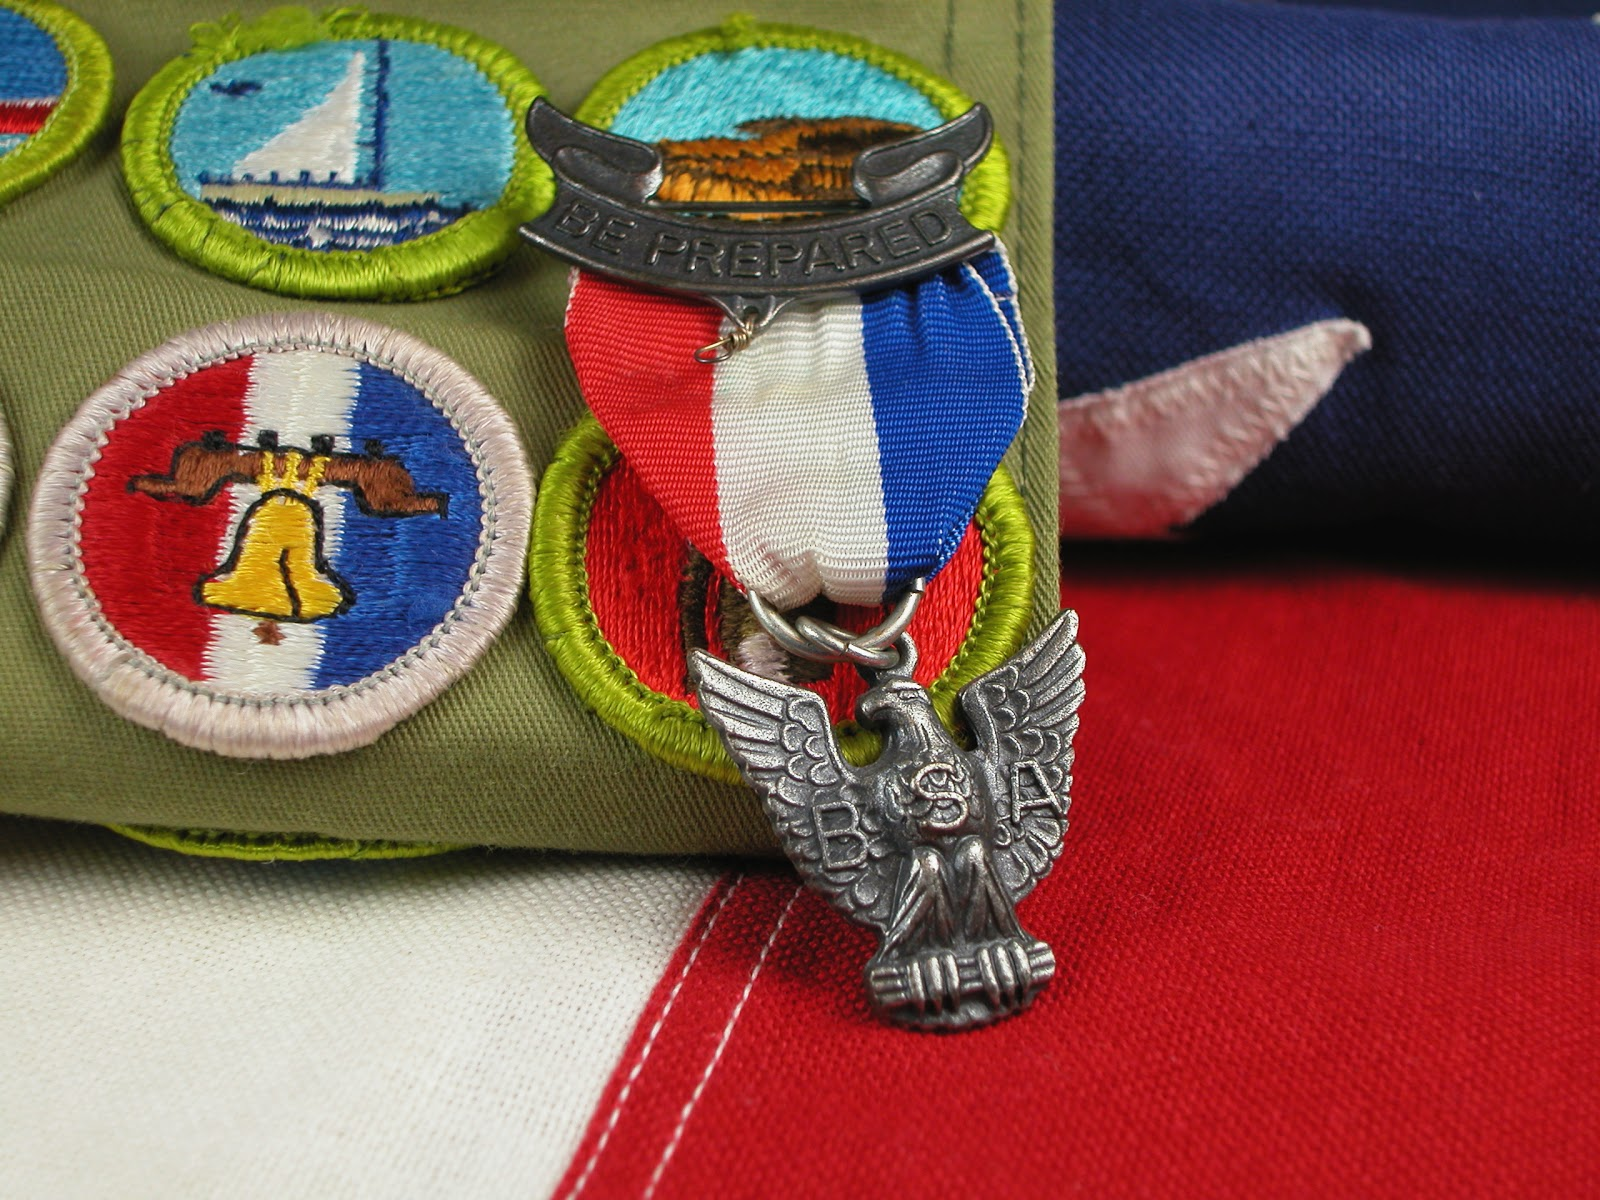 Eagle Scout Invitations: Badges and pin